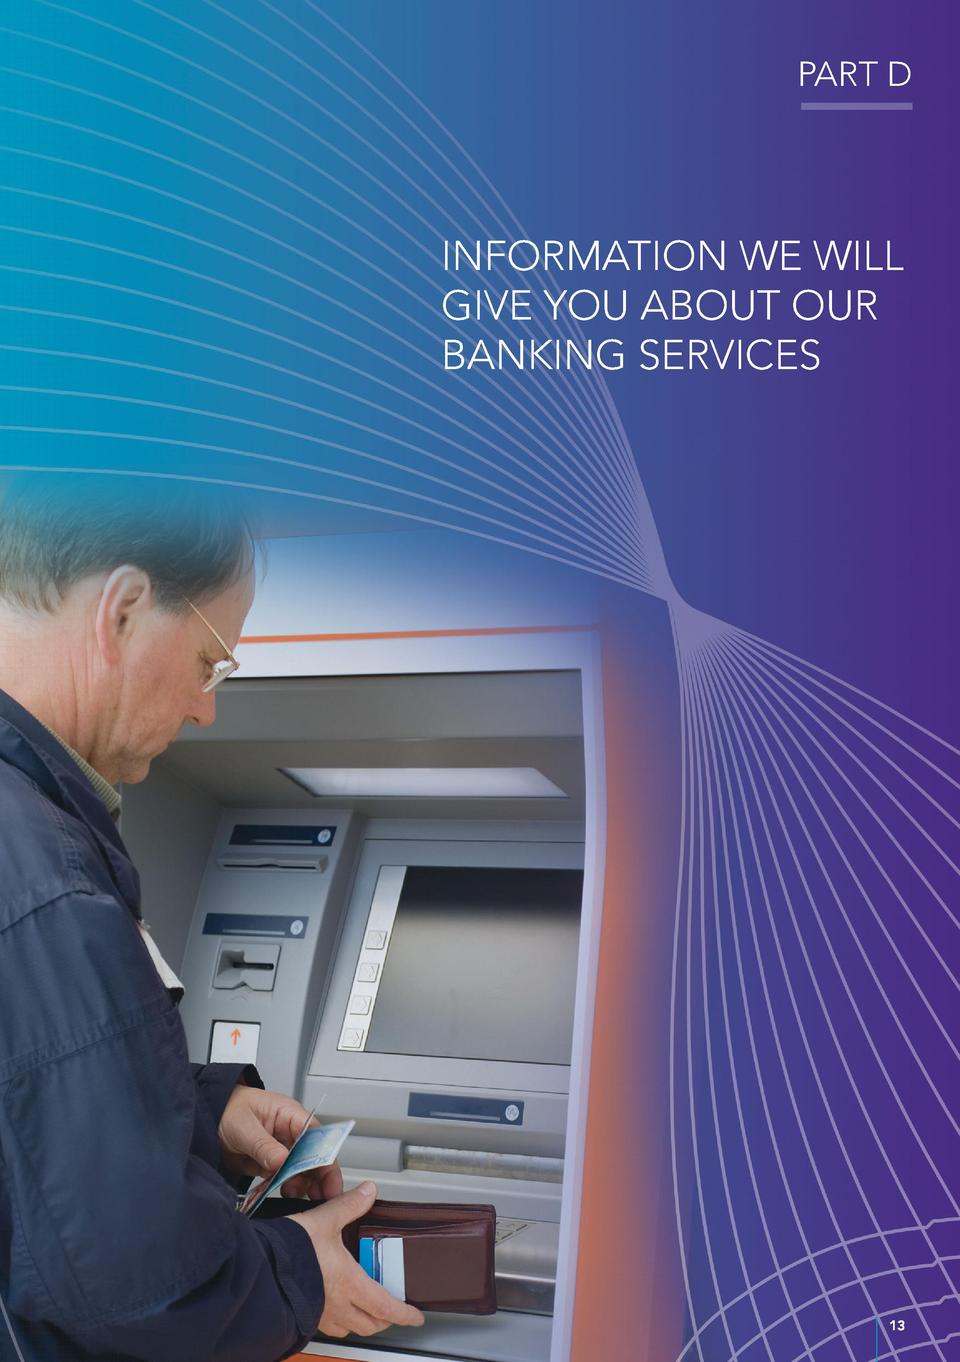 PART D  INFORMATION WE WILL GIVE YOU ABOUT OUR BANKING SERVICES  13